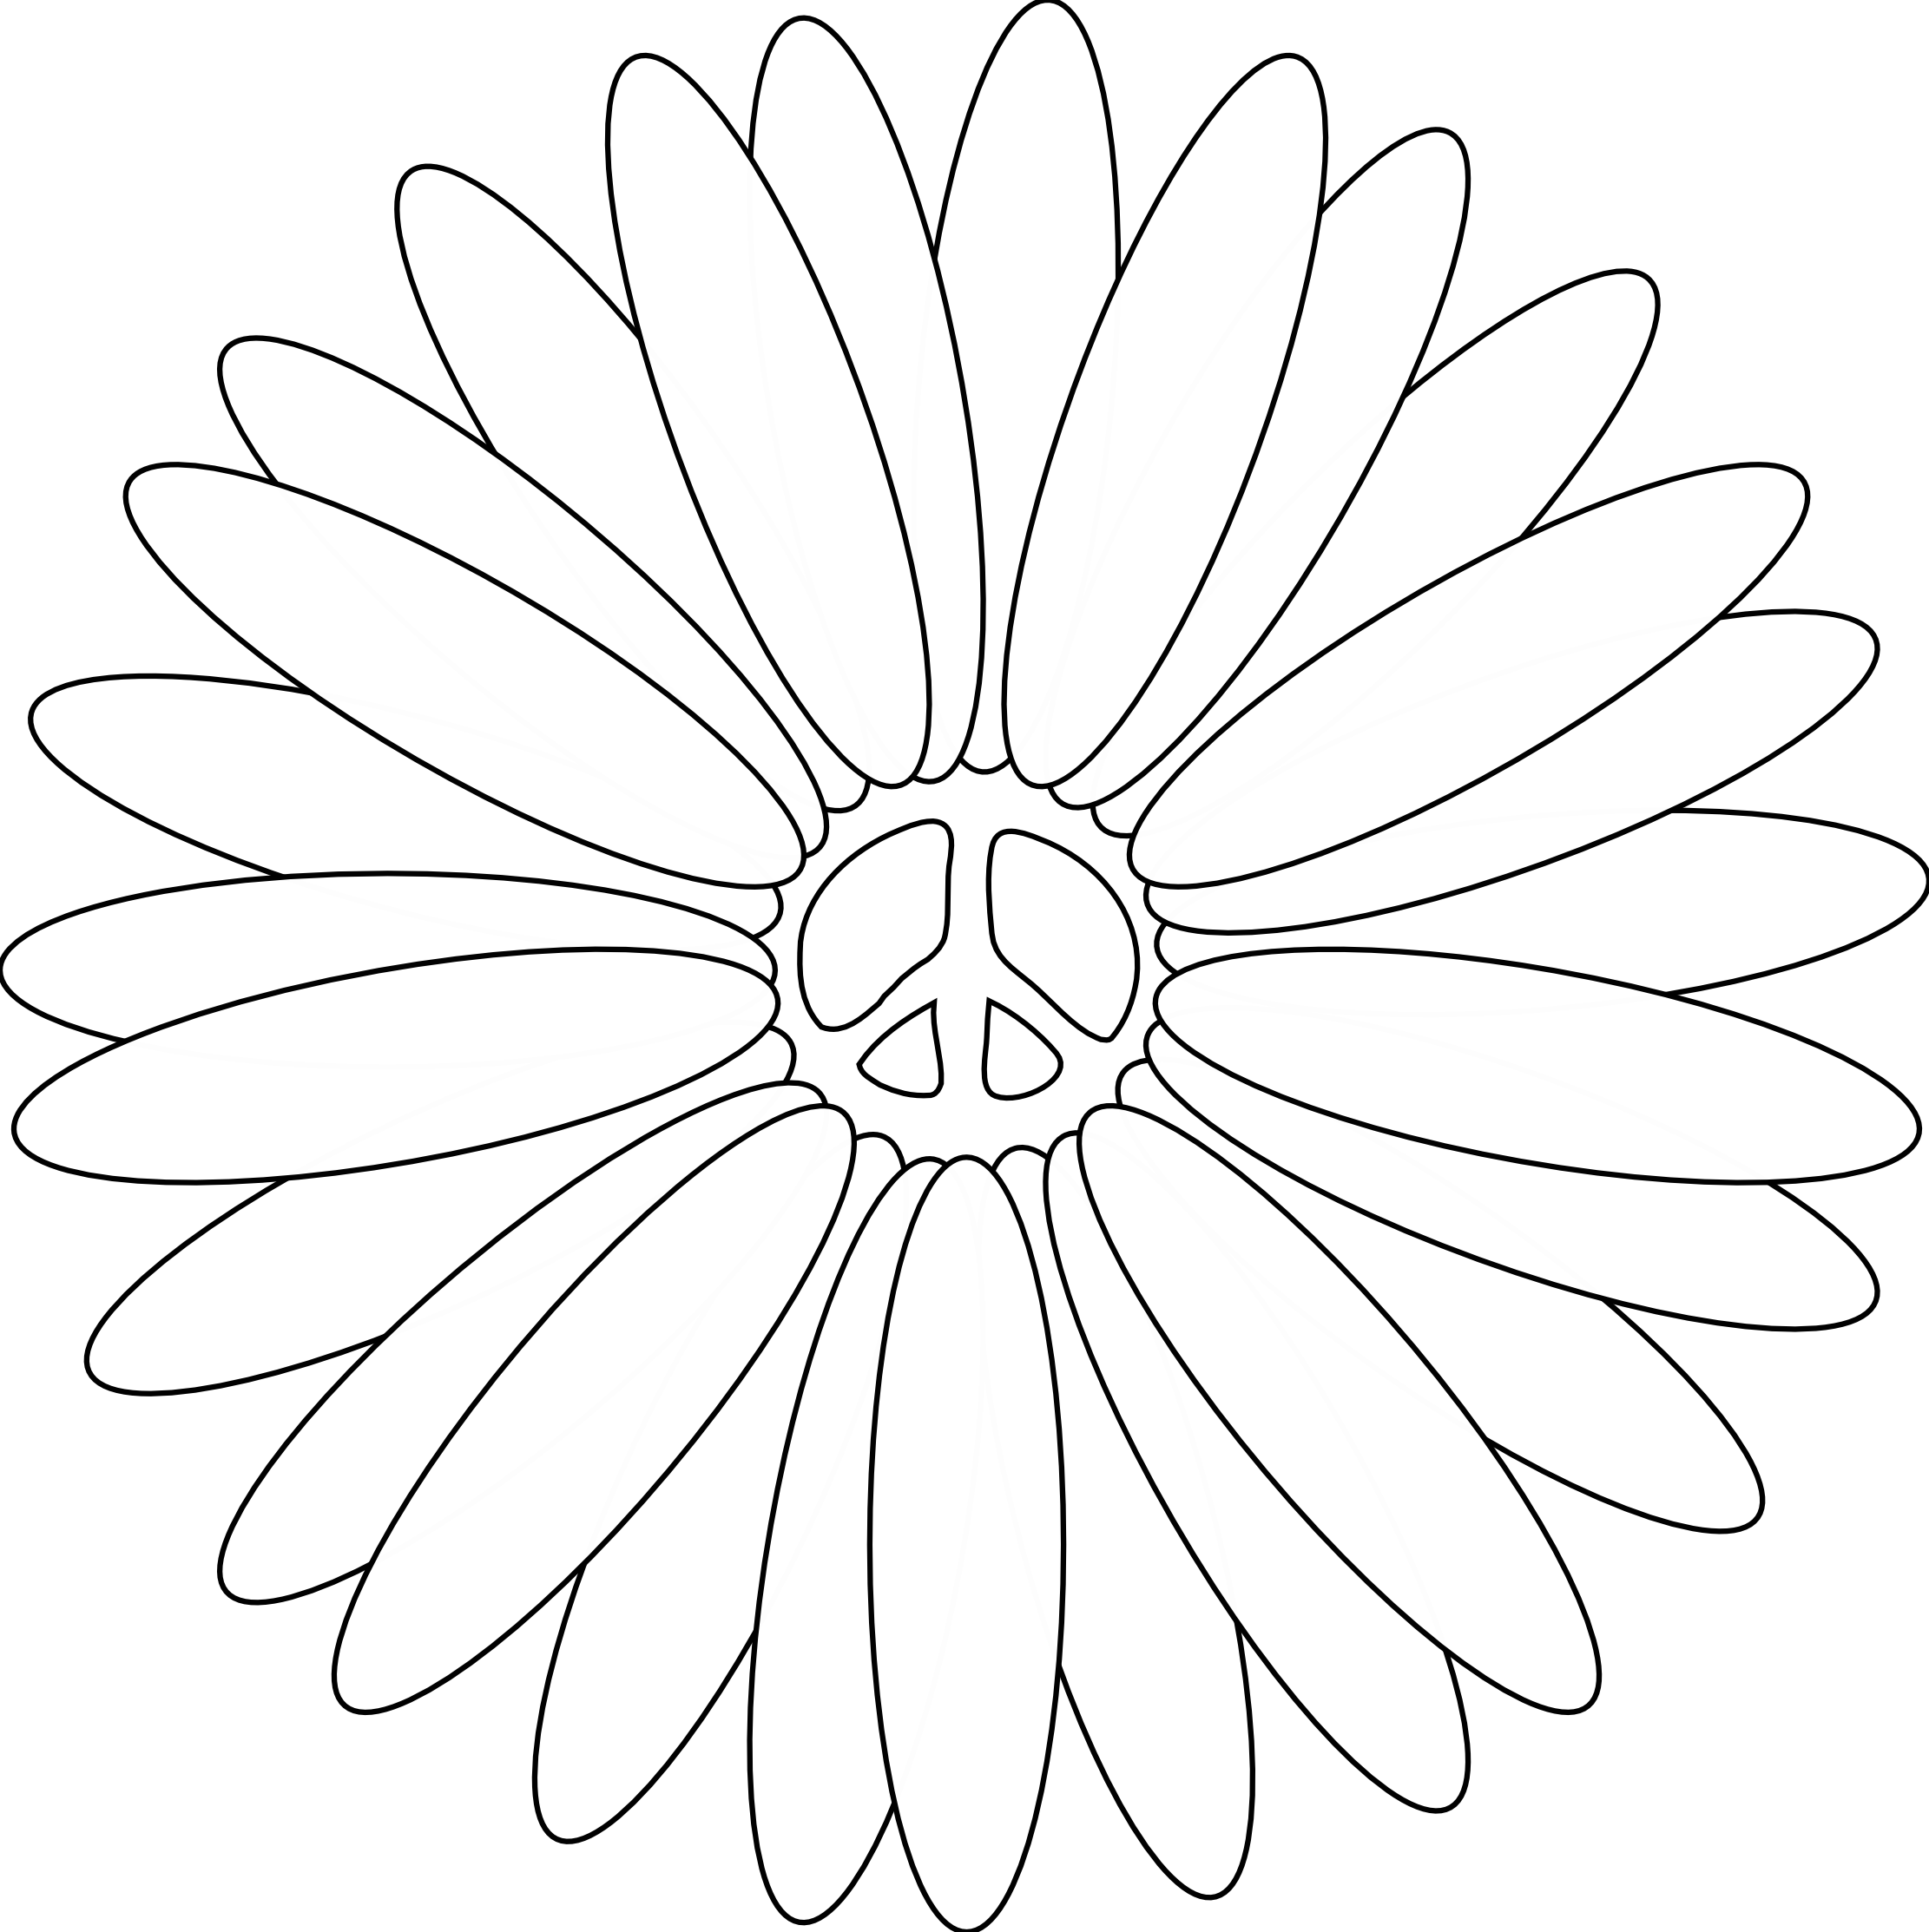 clip art coloring pages of peace signs peace sign coloring pages printable dove of symbol flower